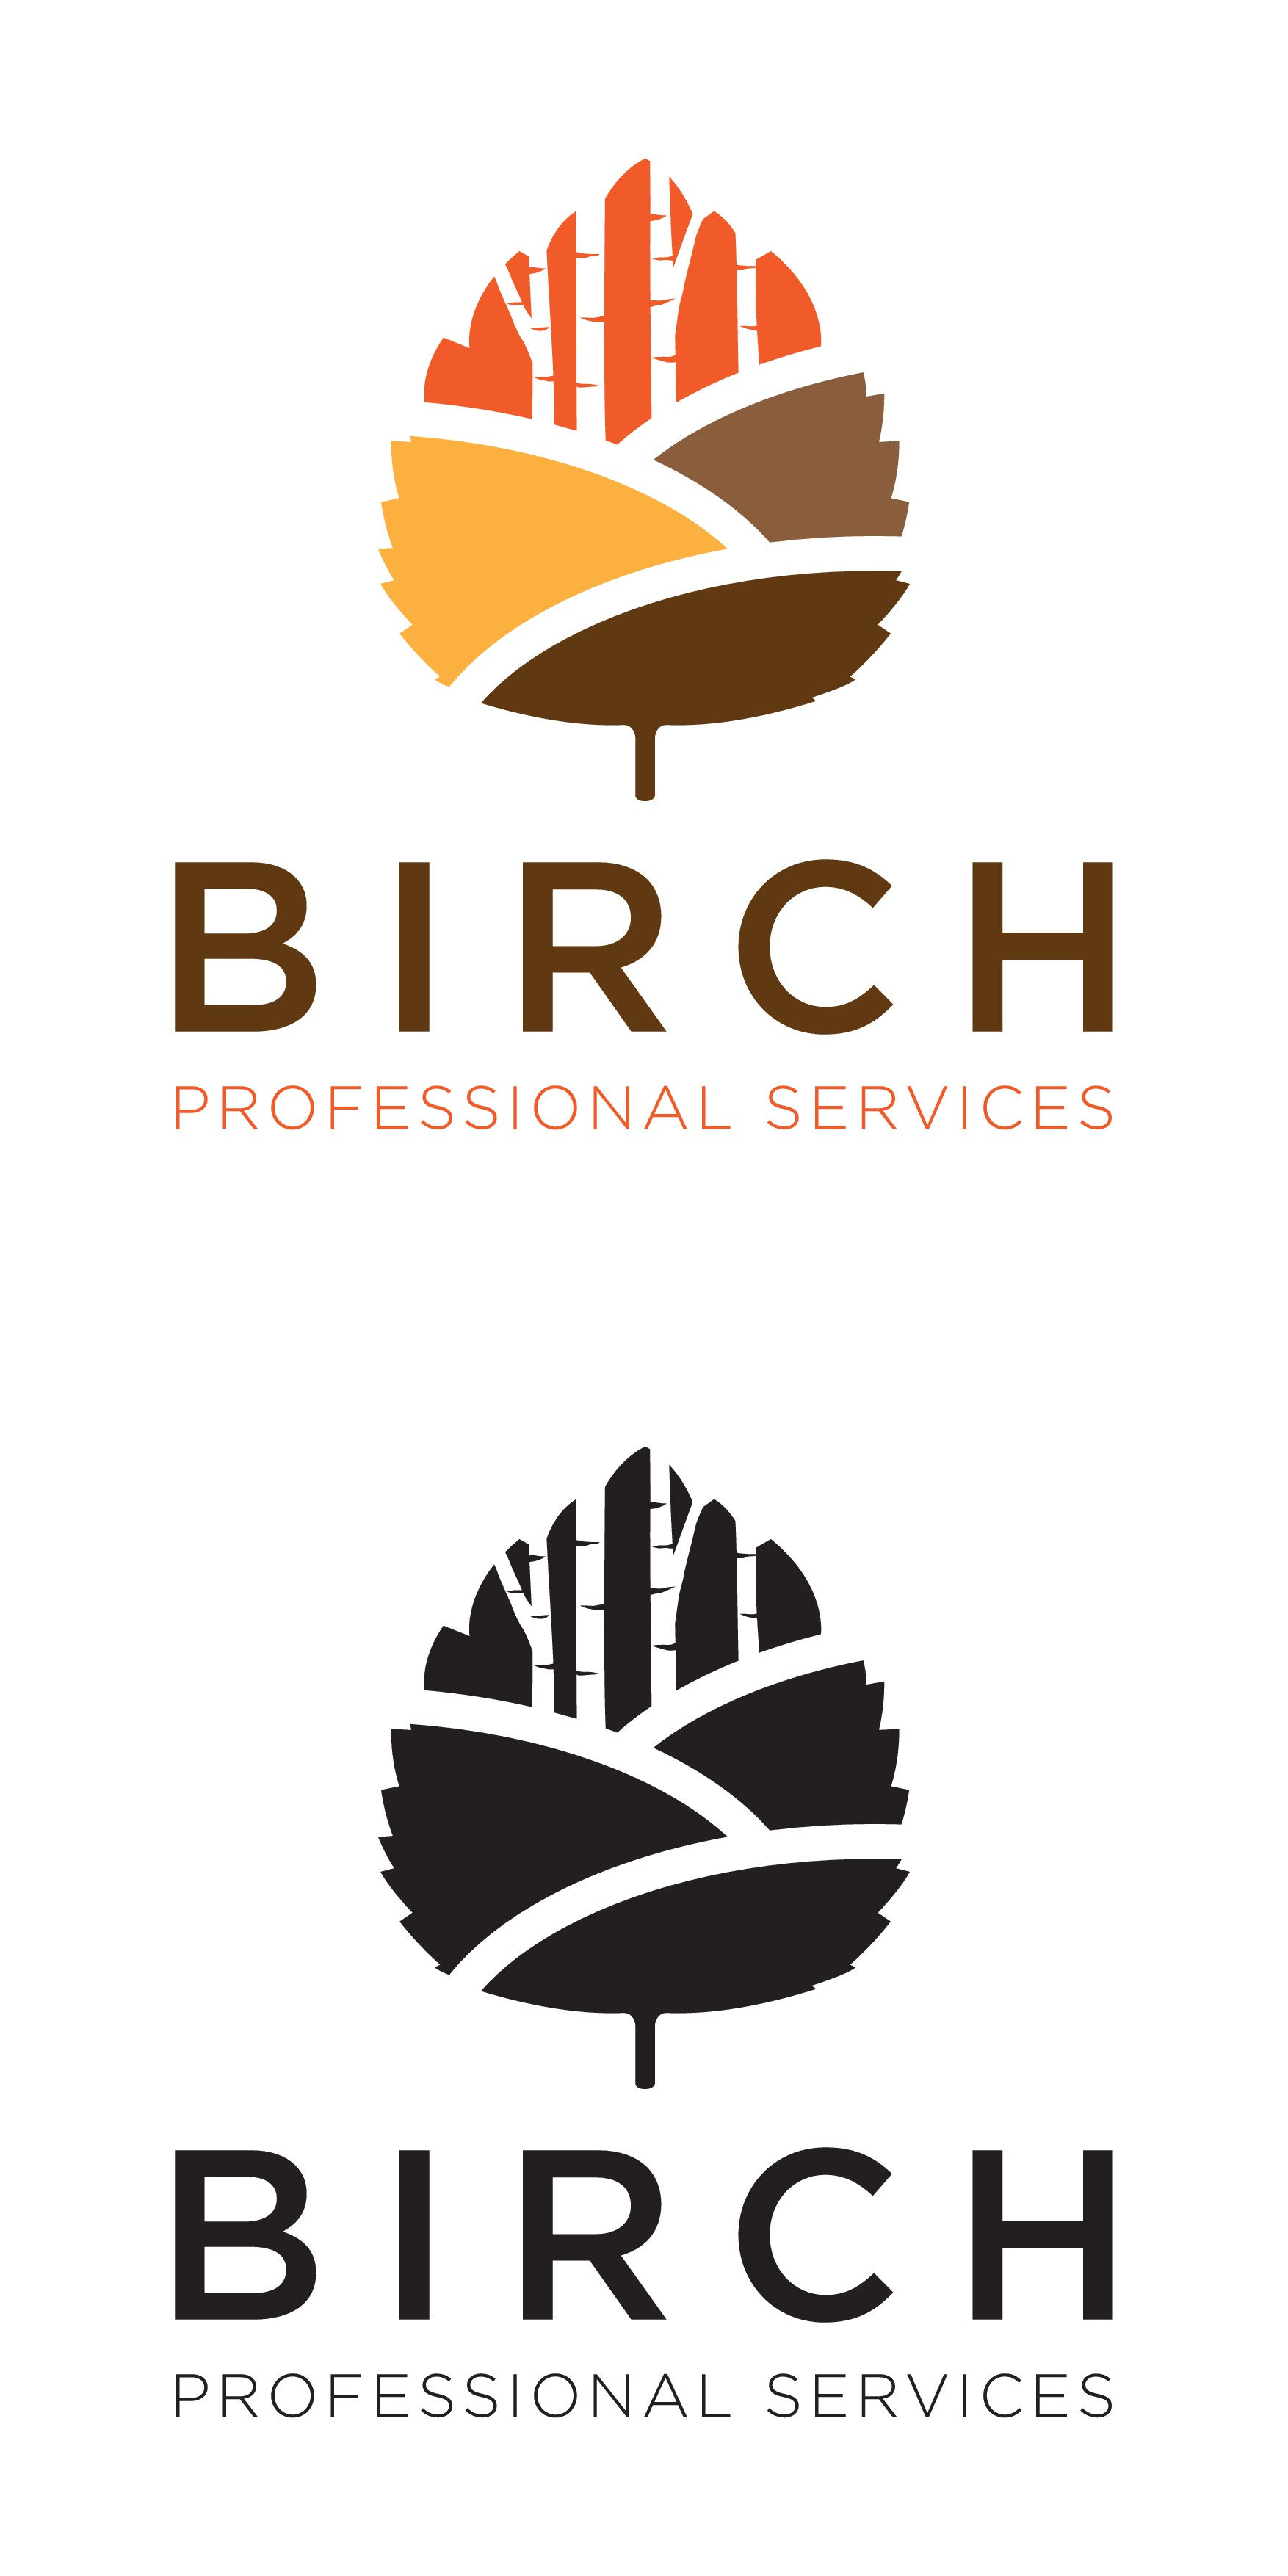 Birch Professional Services needs a bold logo for new business!